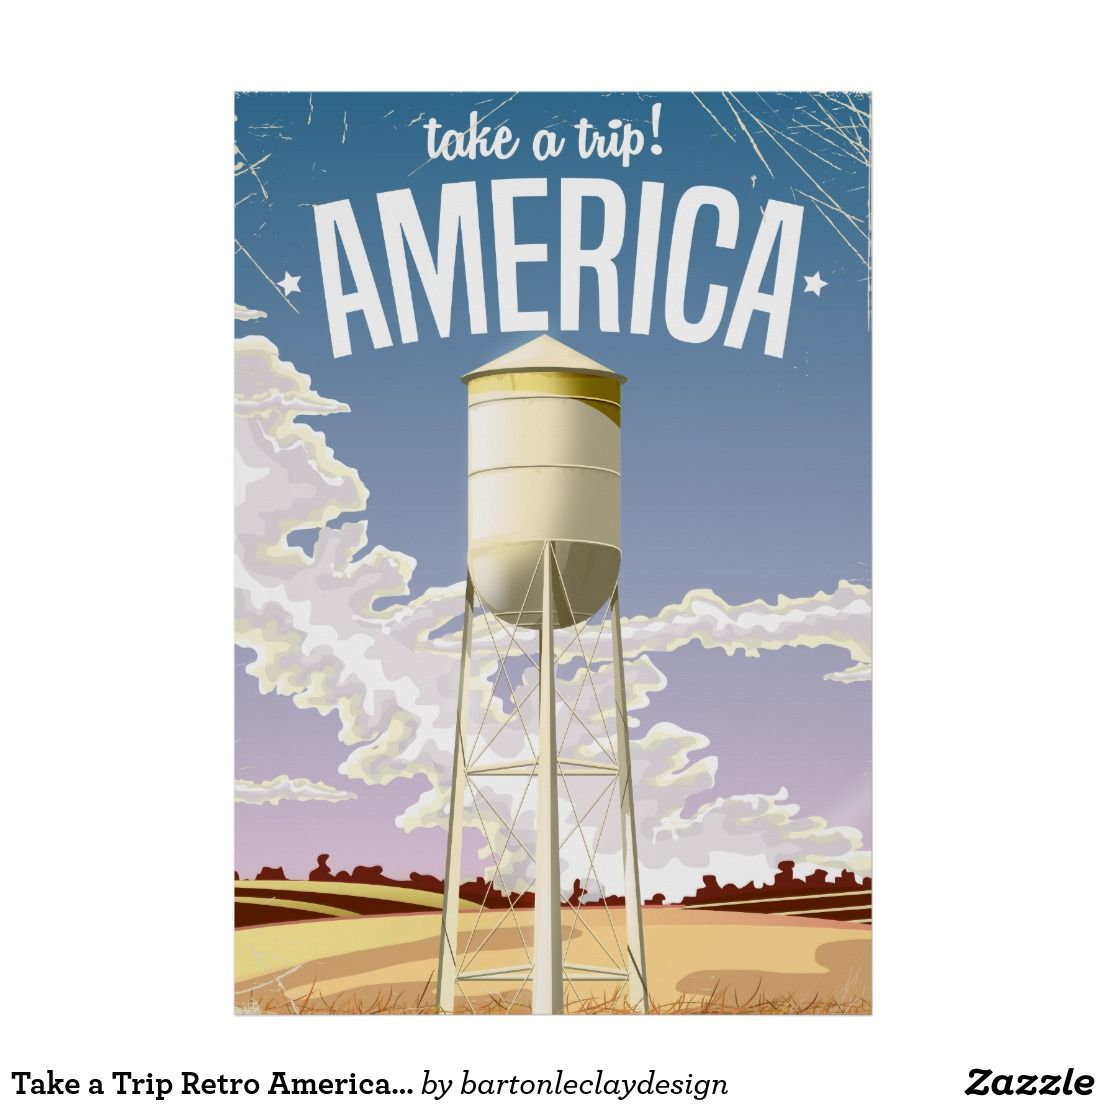 Take a Trip Retro America travel poster. Poster